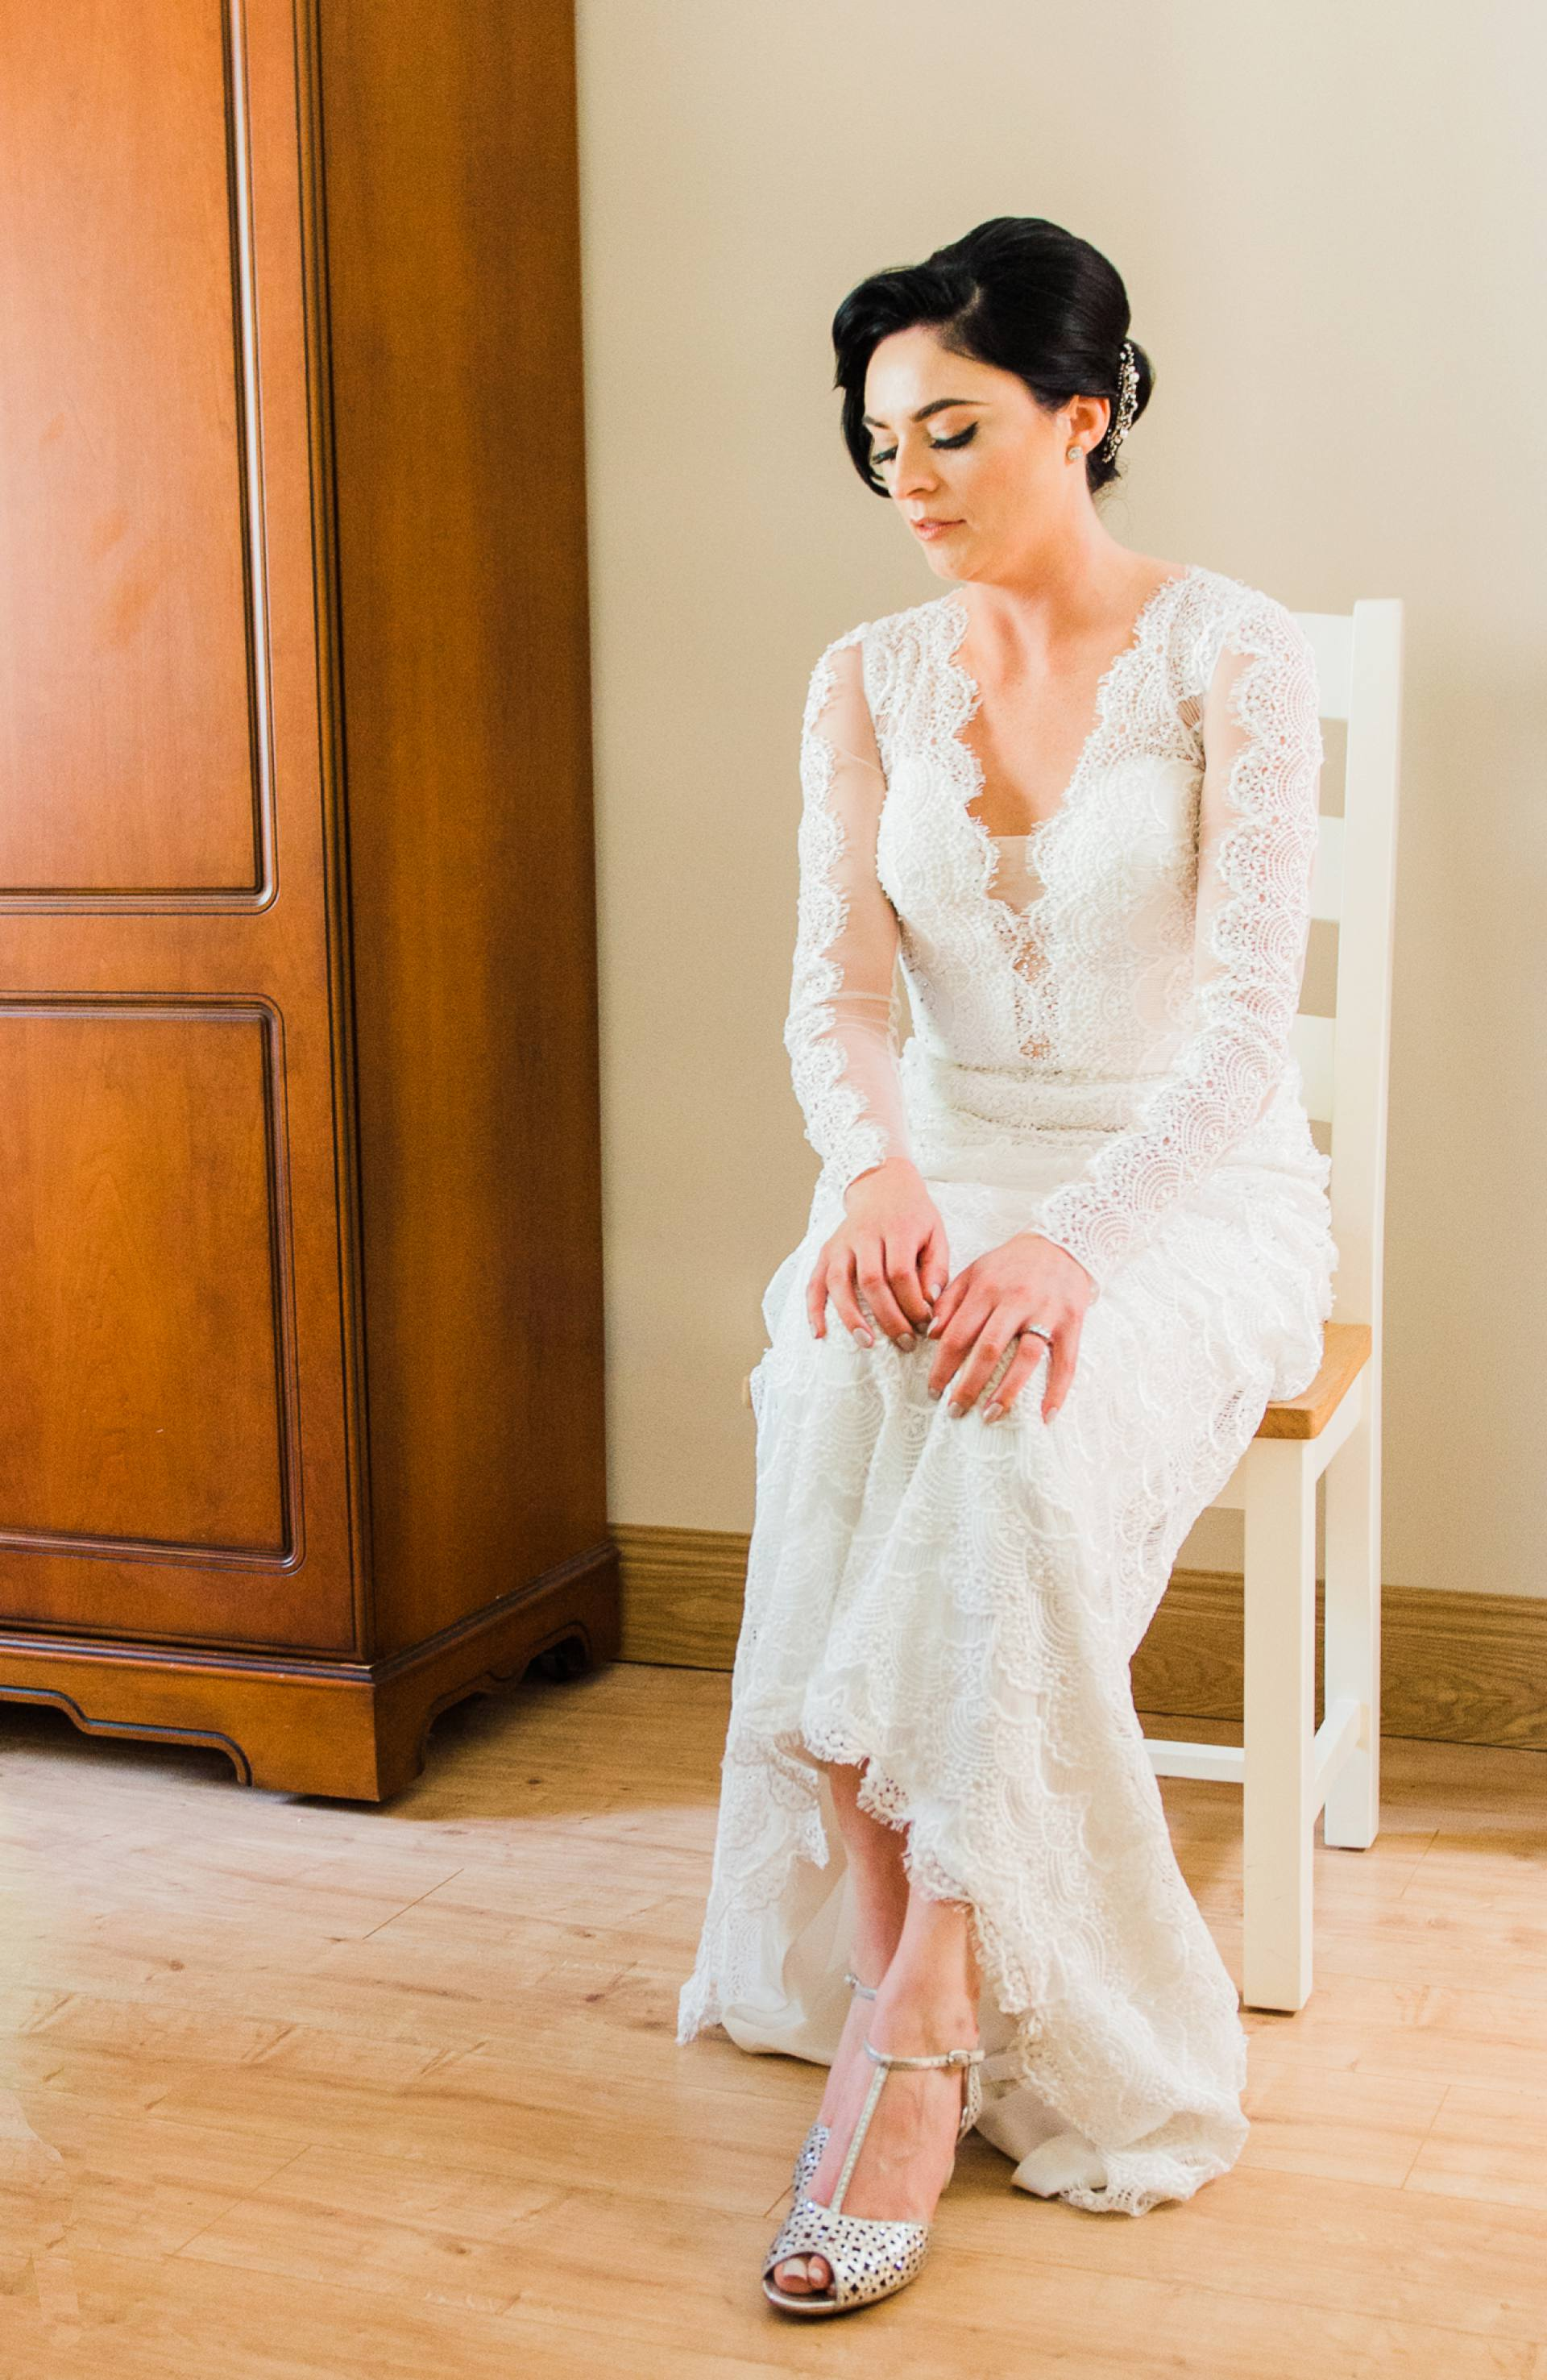 Bride sitting in a chair